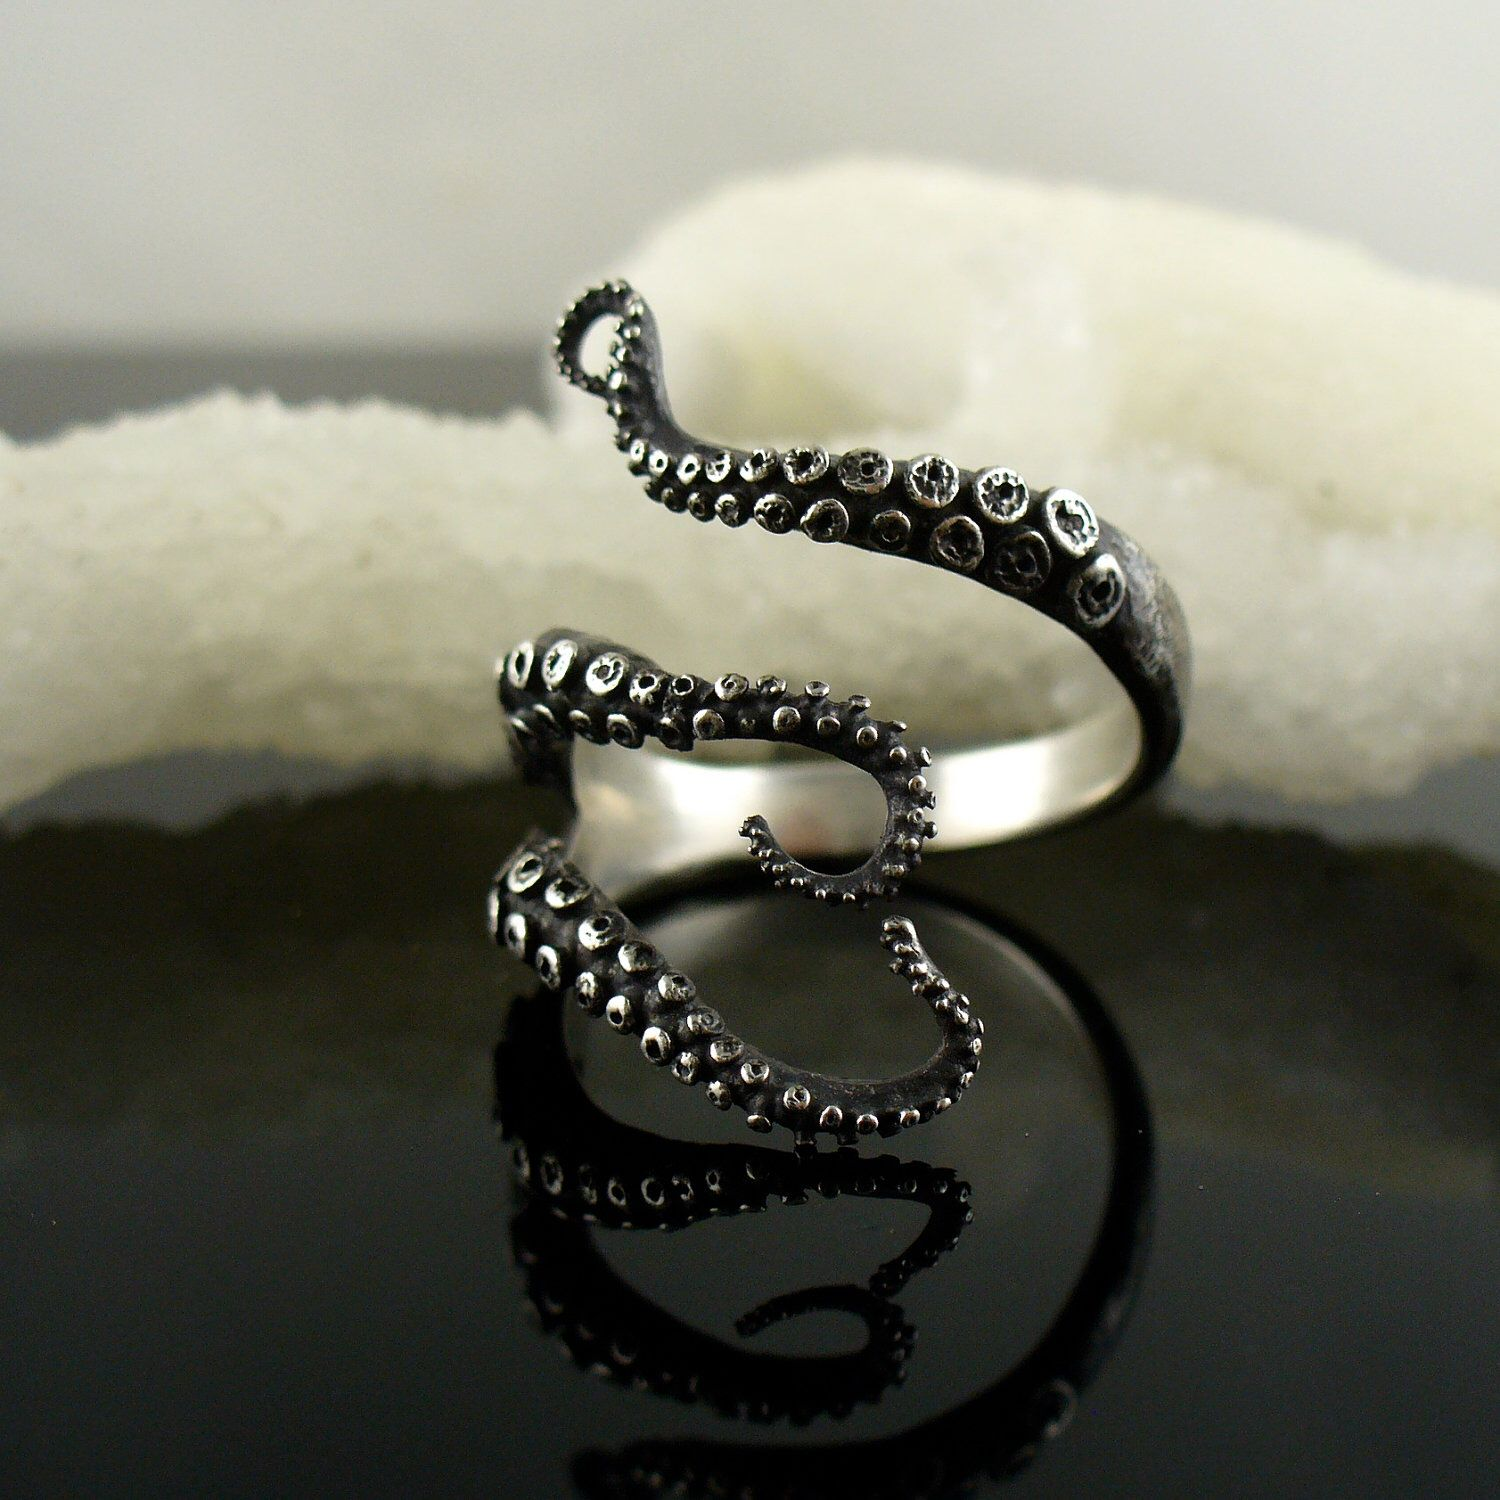 SALE - wicked tentacle ring by OctopusMe on Etsy https://www.etsy.com/listing/92345055/sale-wicked-tentacle-ring